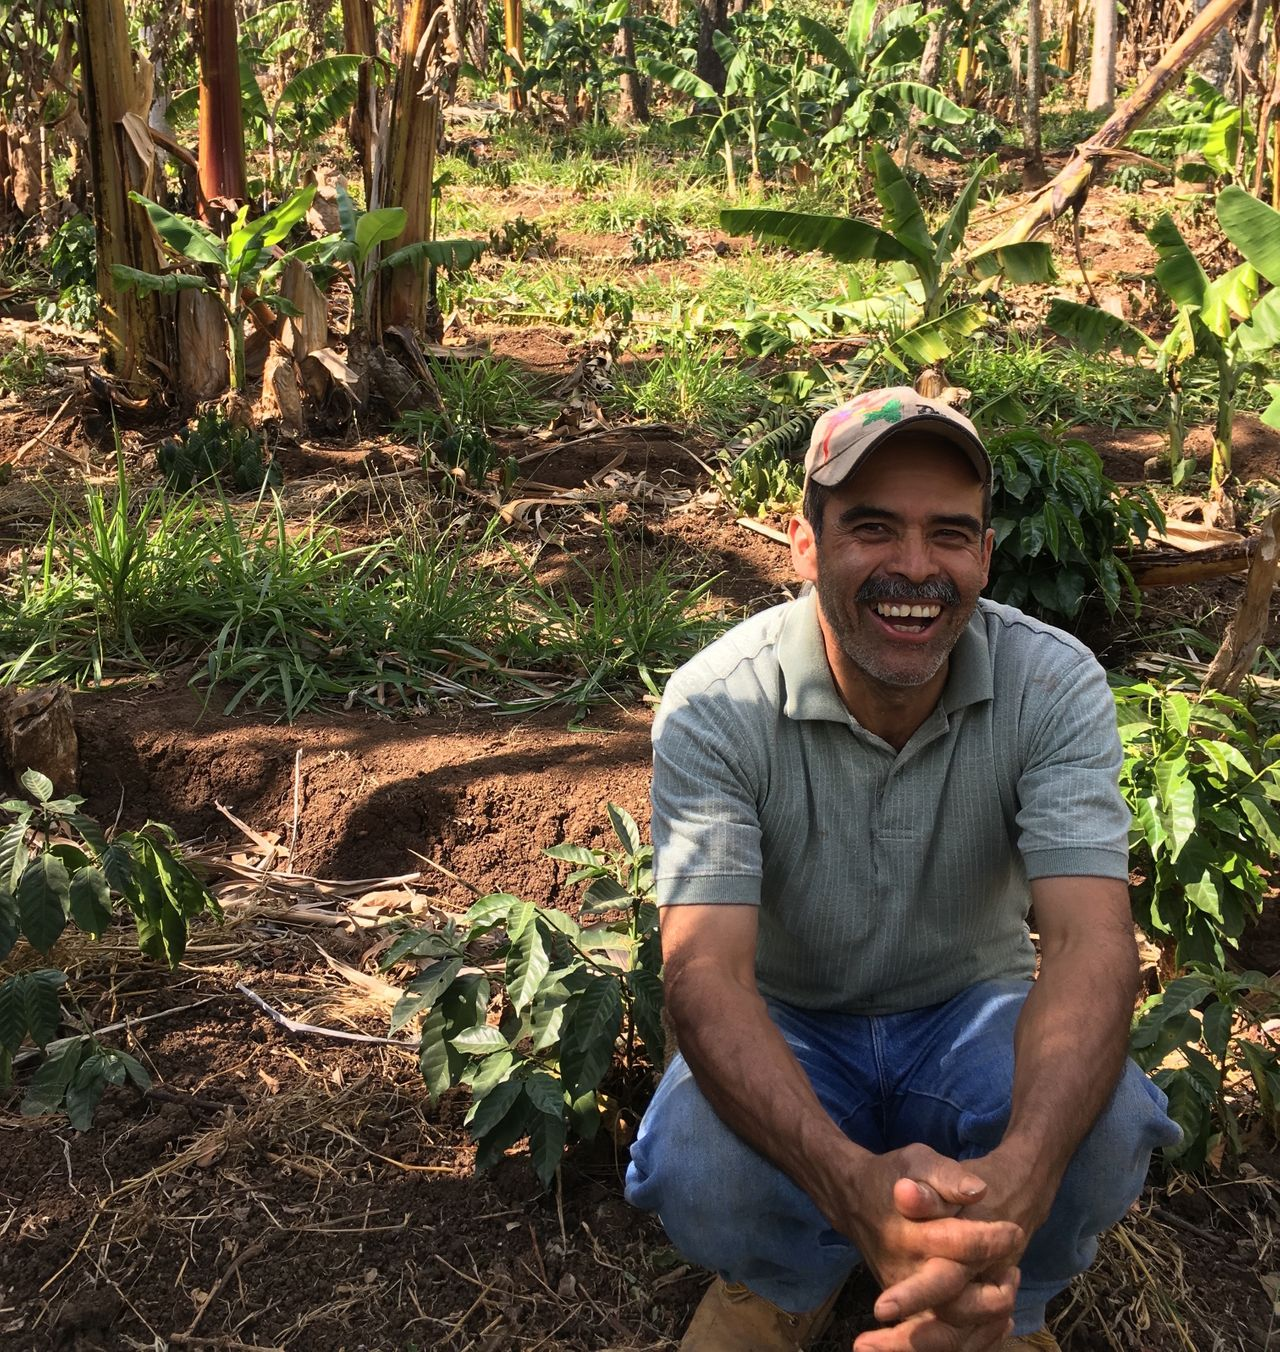 A farmer on a newly planted coffee plantation that employed remediation techniques to guard against the impacts of worsening drought conditions. El Bosque, Guatemala.